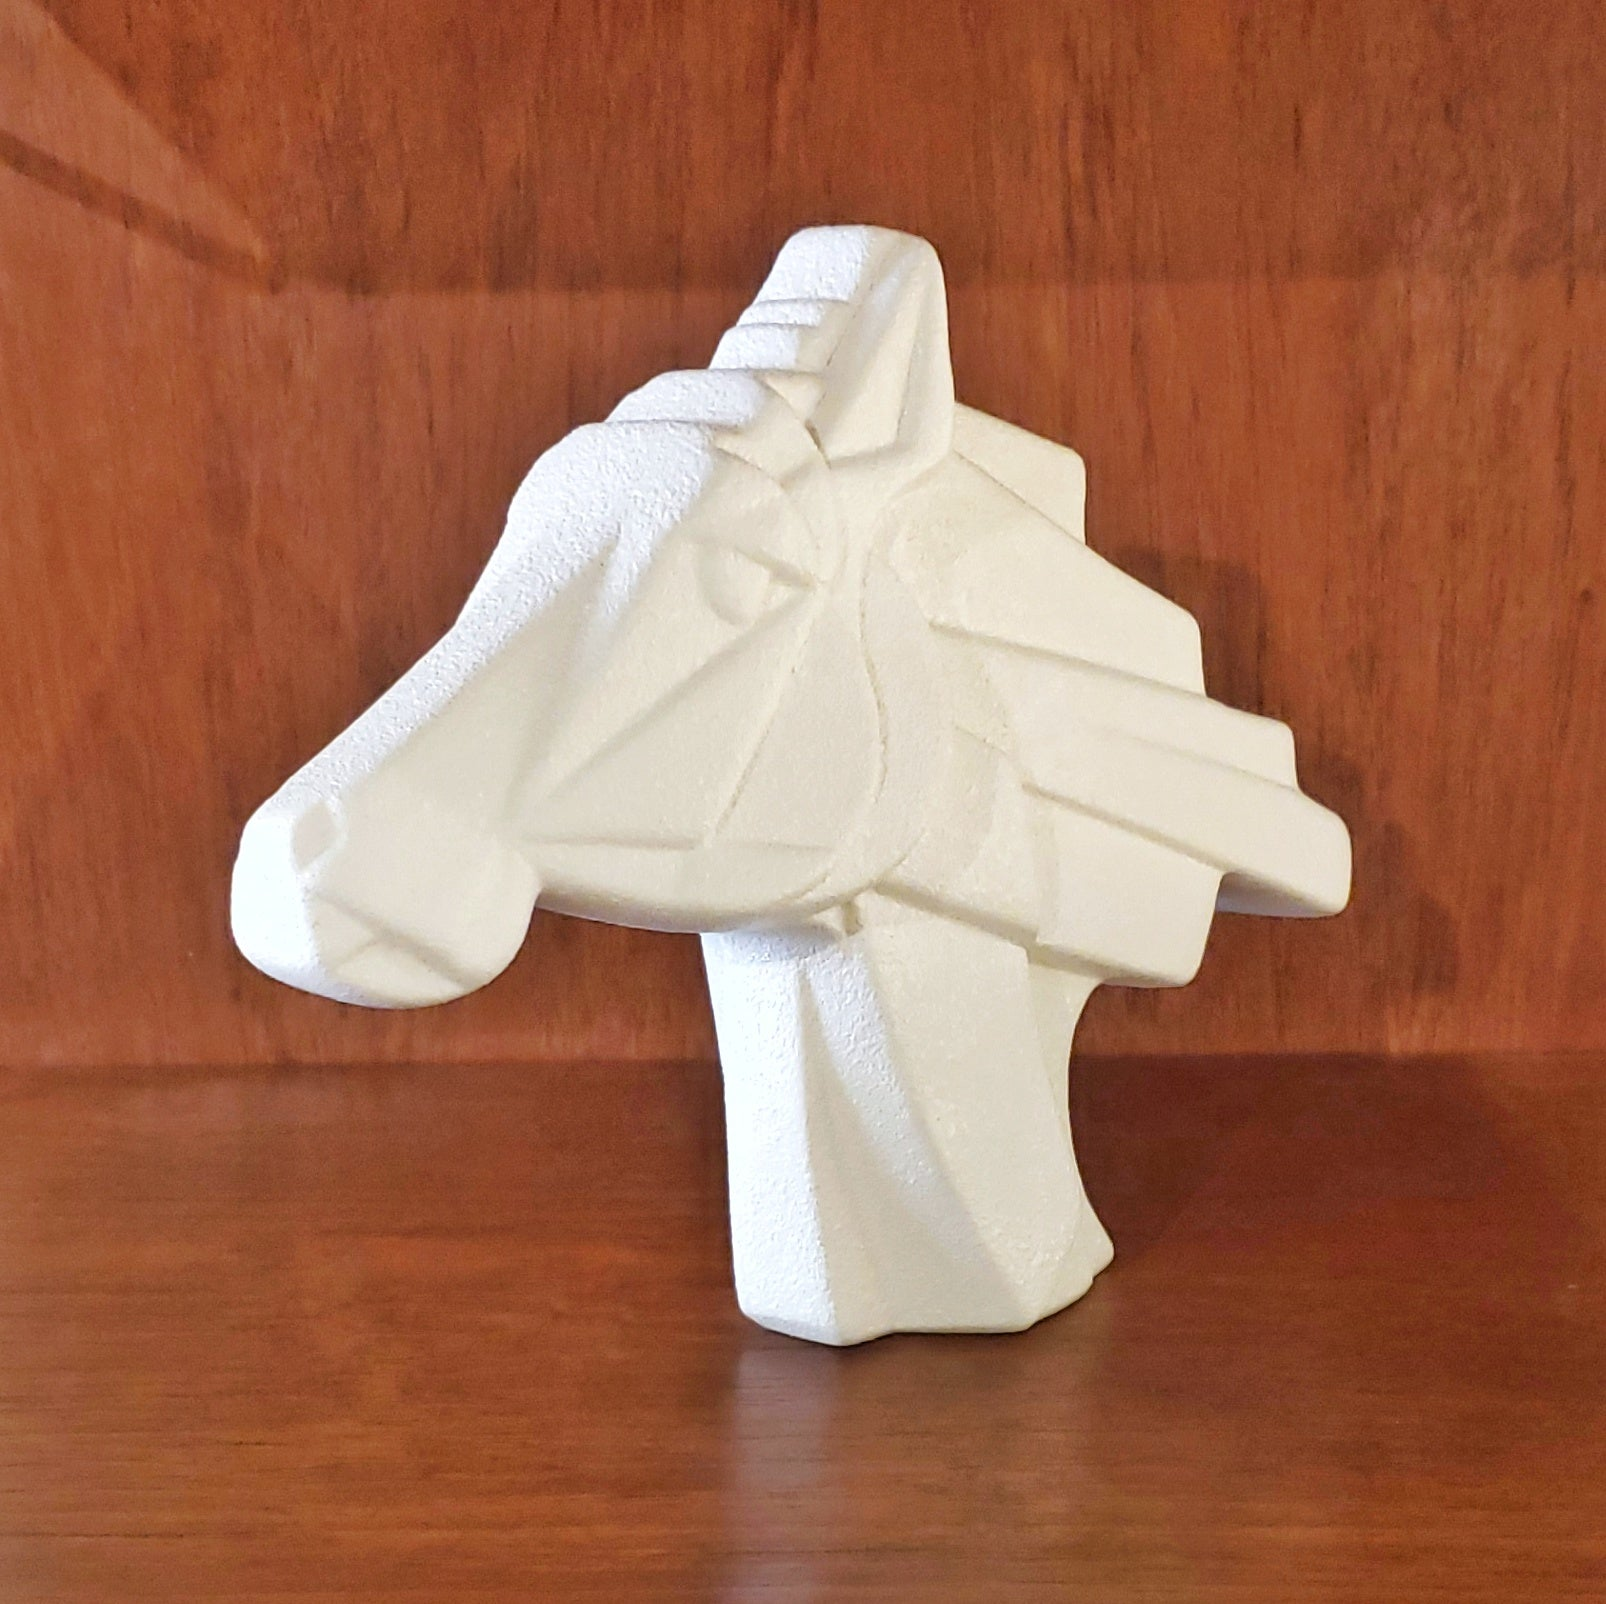 CERAMIC HORSEHEAD FIGURE